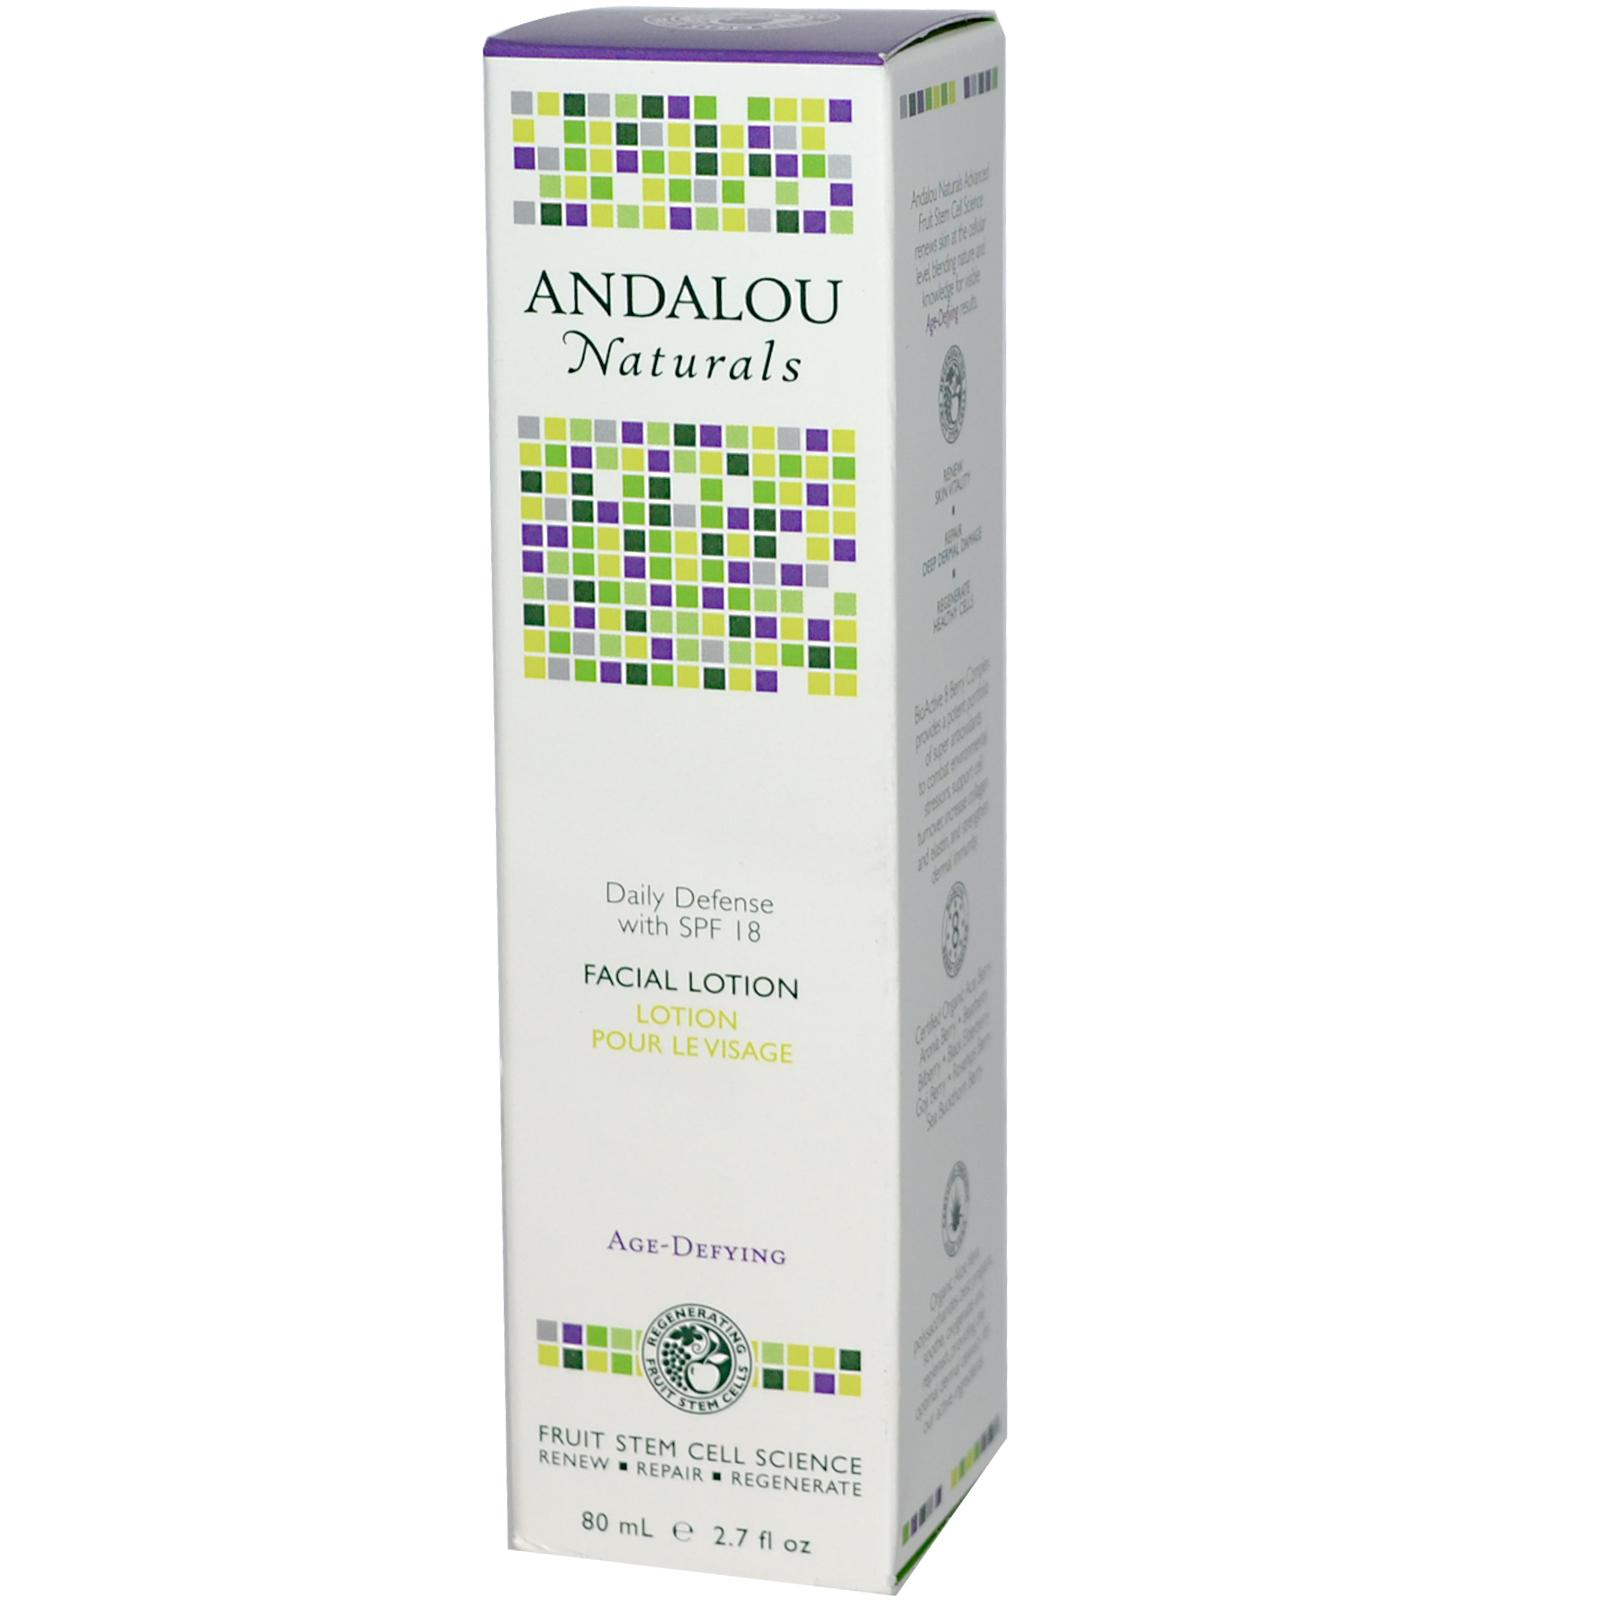 Andalou Naturals Daily Defense Facial Lotion w/ SPF 18 (1x2.7 Oz)